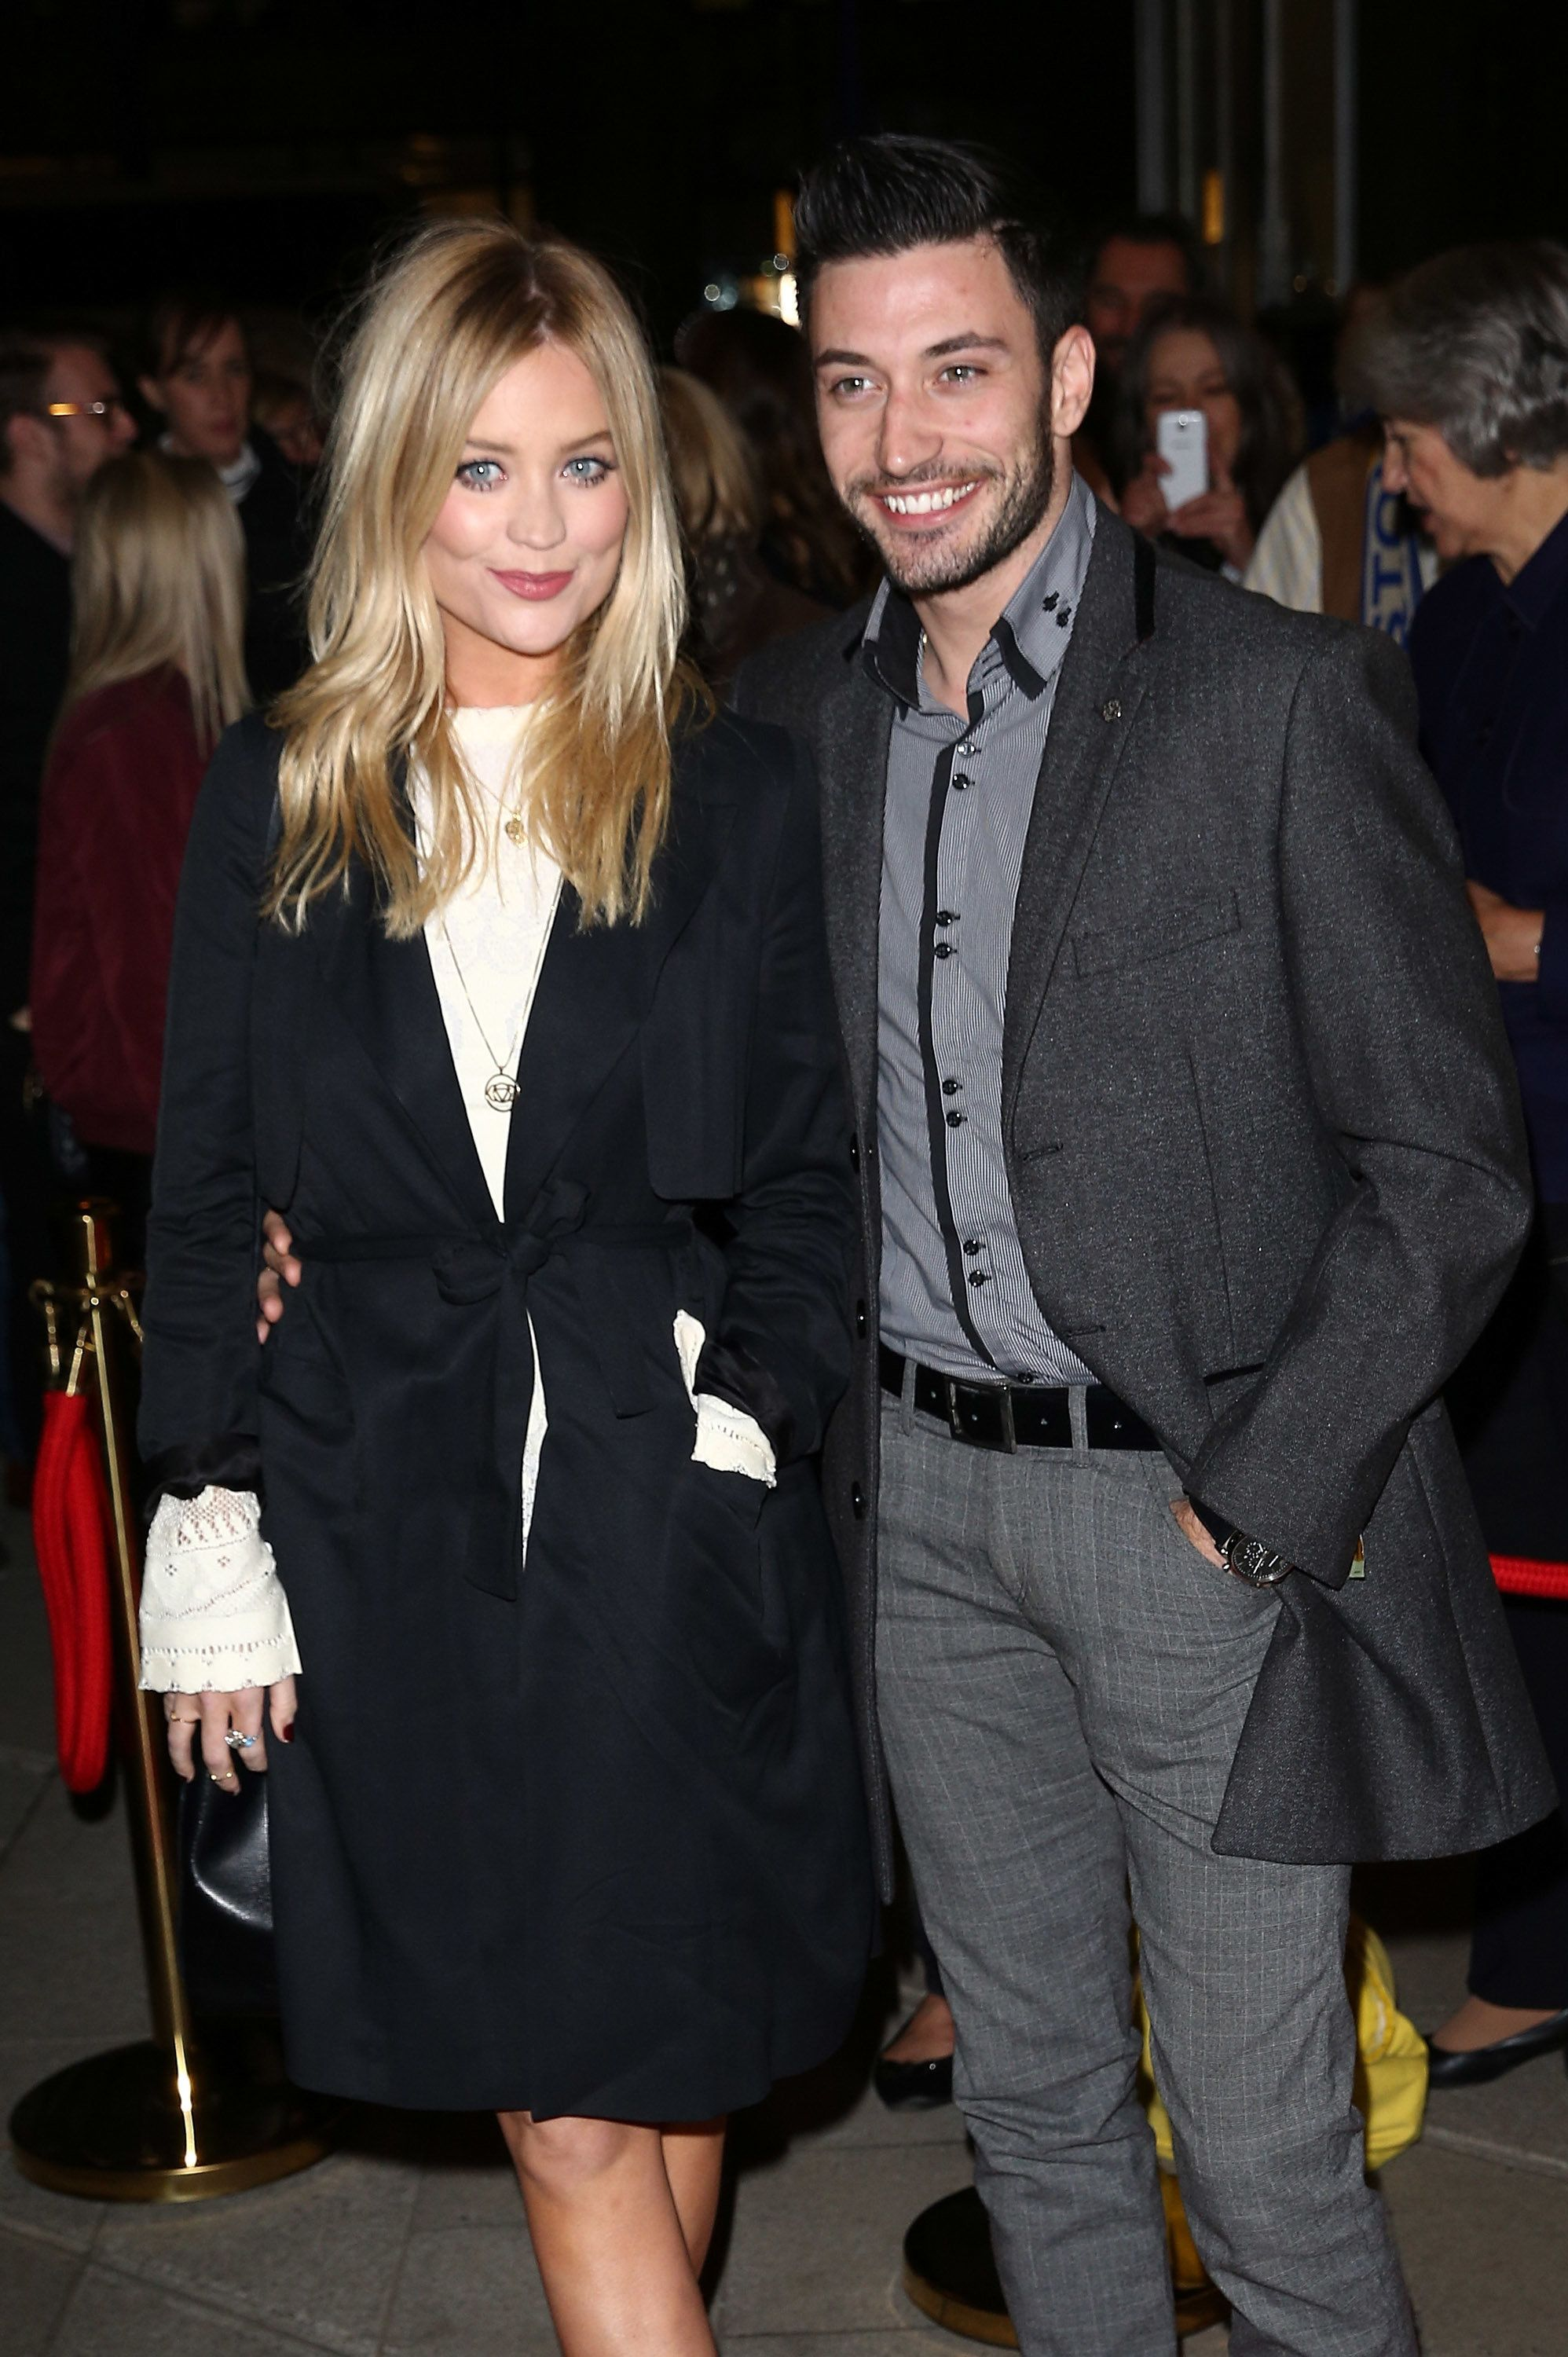 'No Love Lost' Between 'Strictly' Stars Laura Whitmore And Former Dance Partner Giovanni